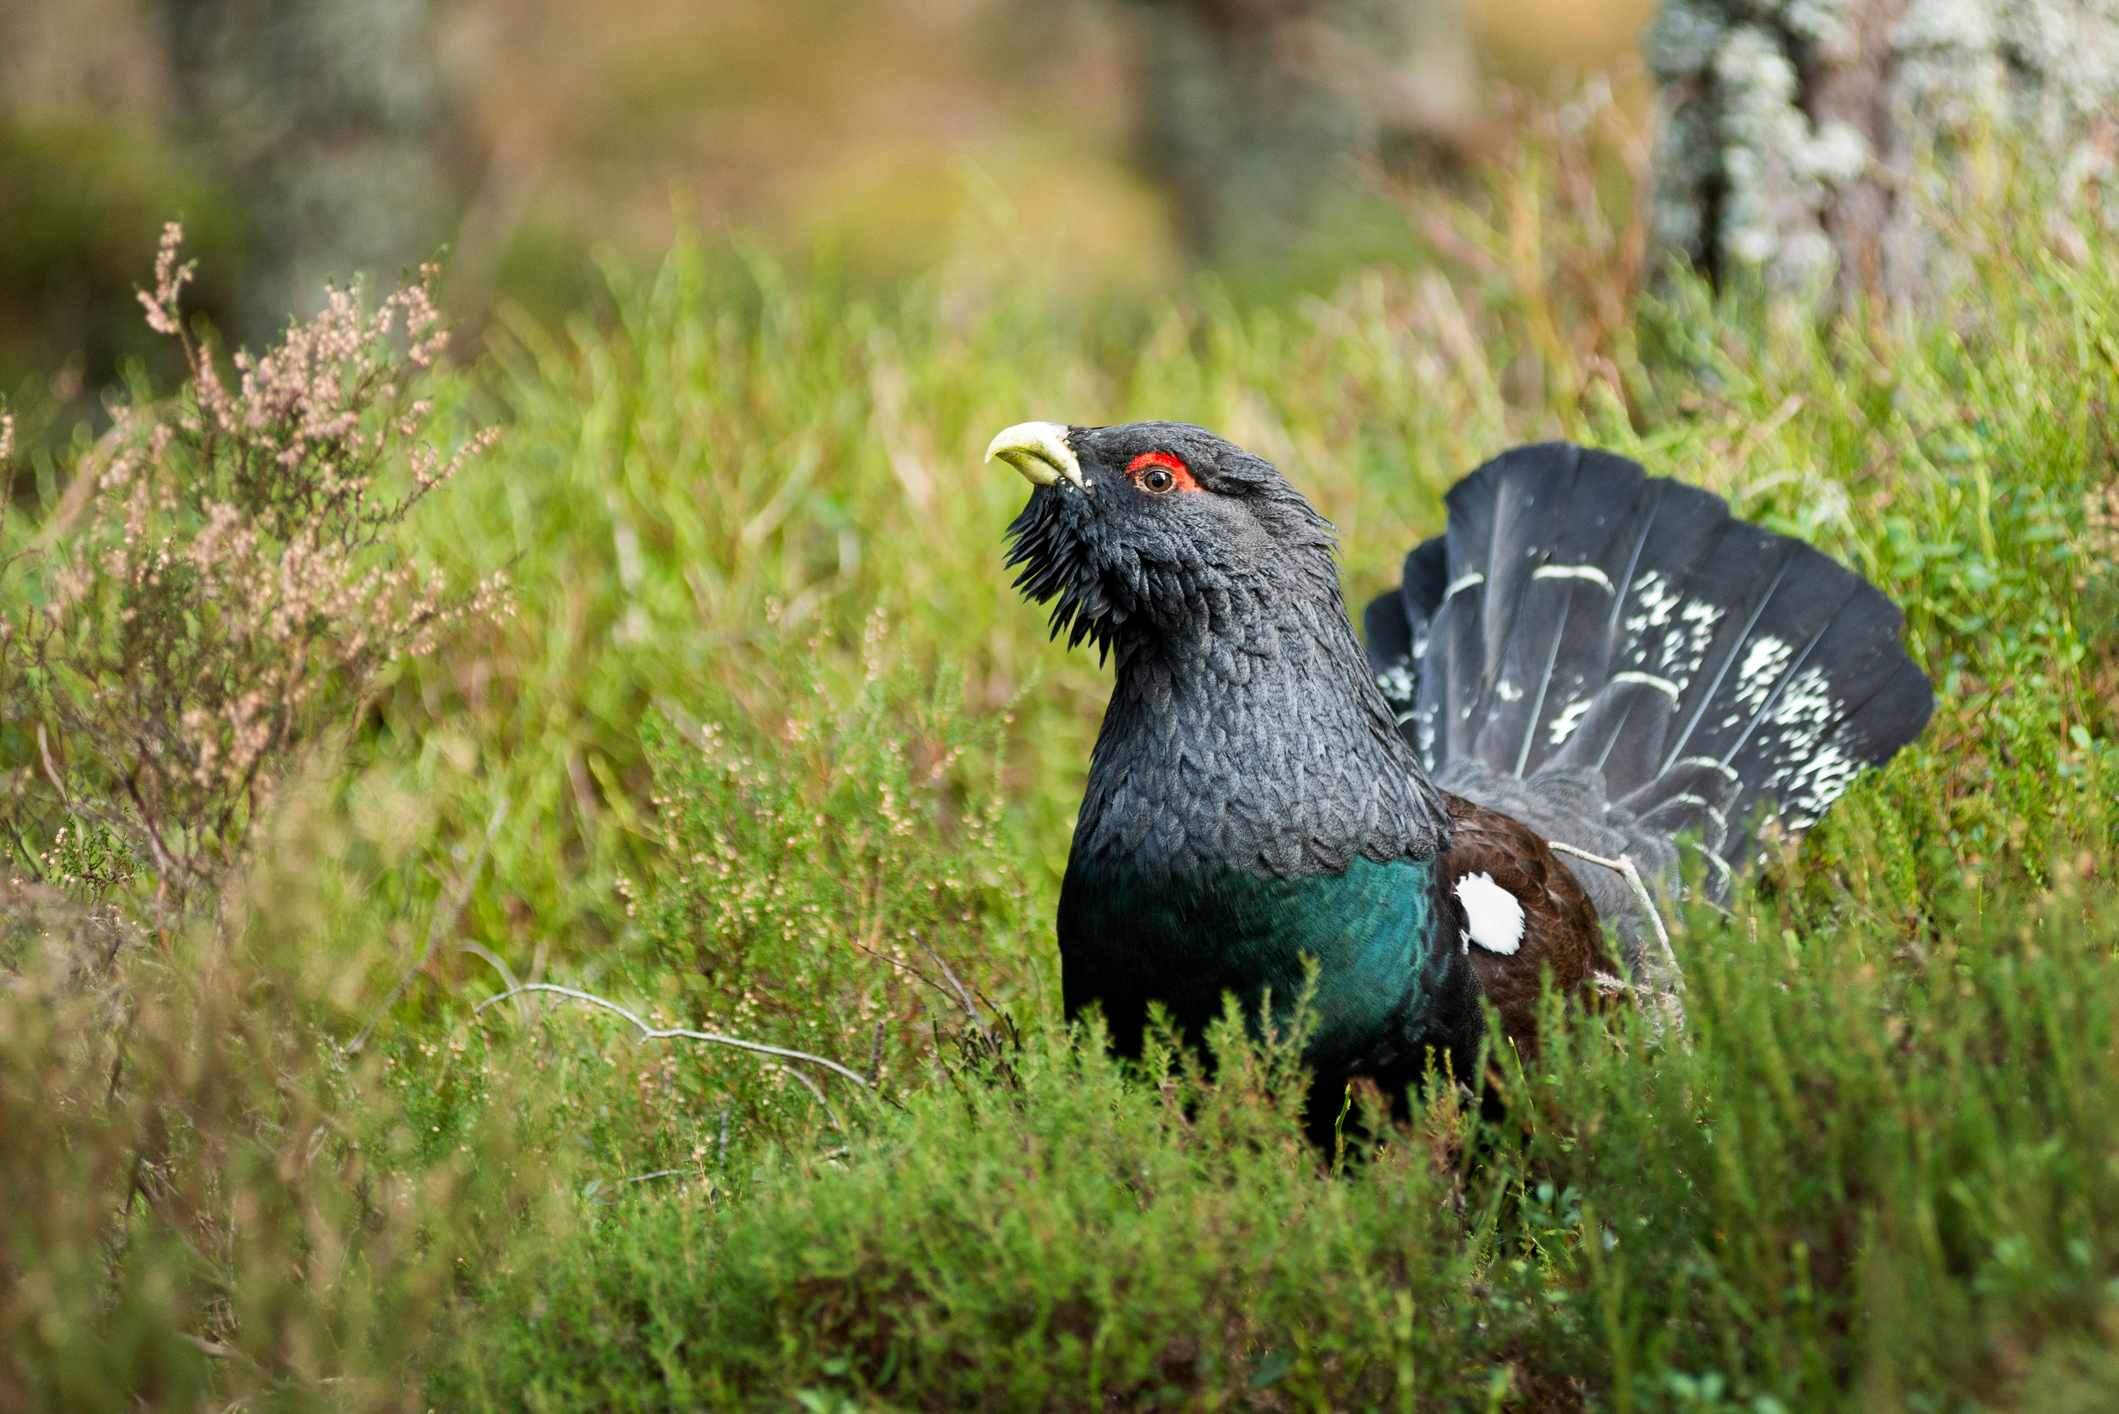 Male capercaillie in a Caledonian pine forest. © Bob Falconer/Getty